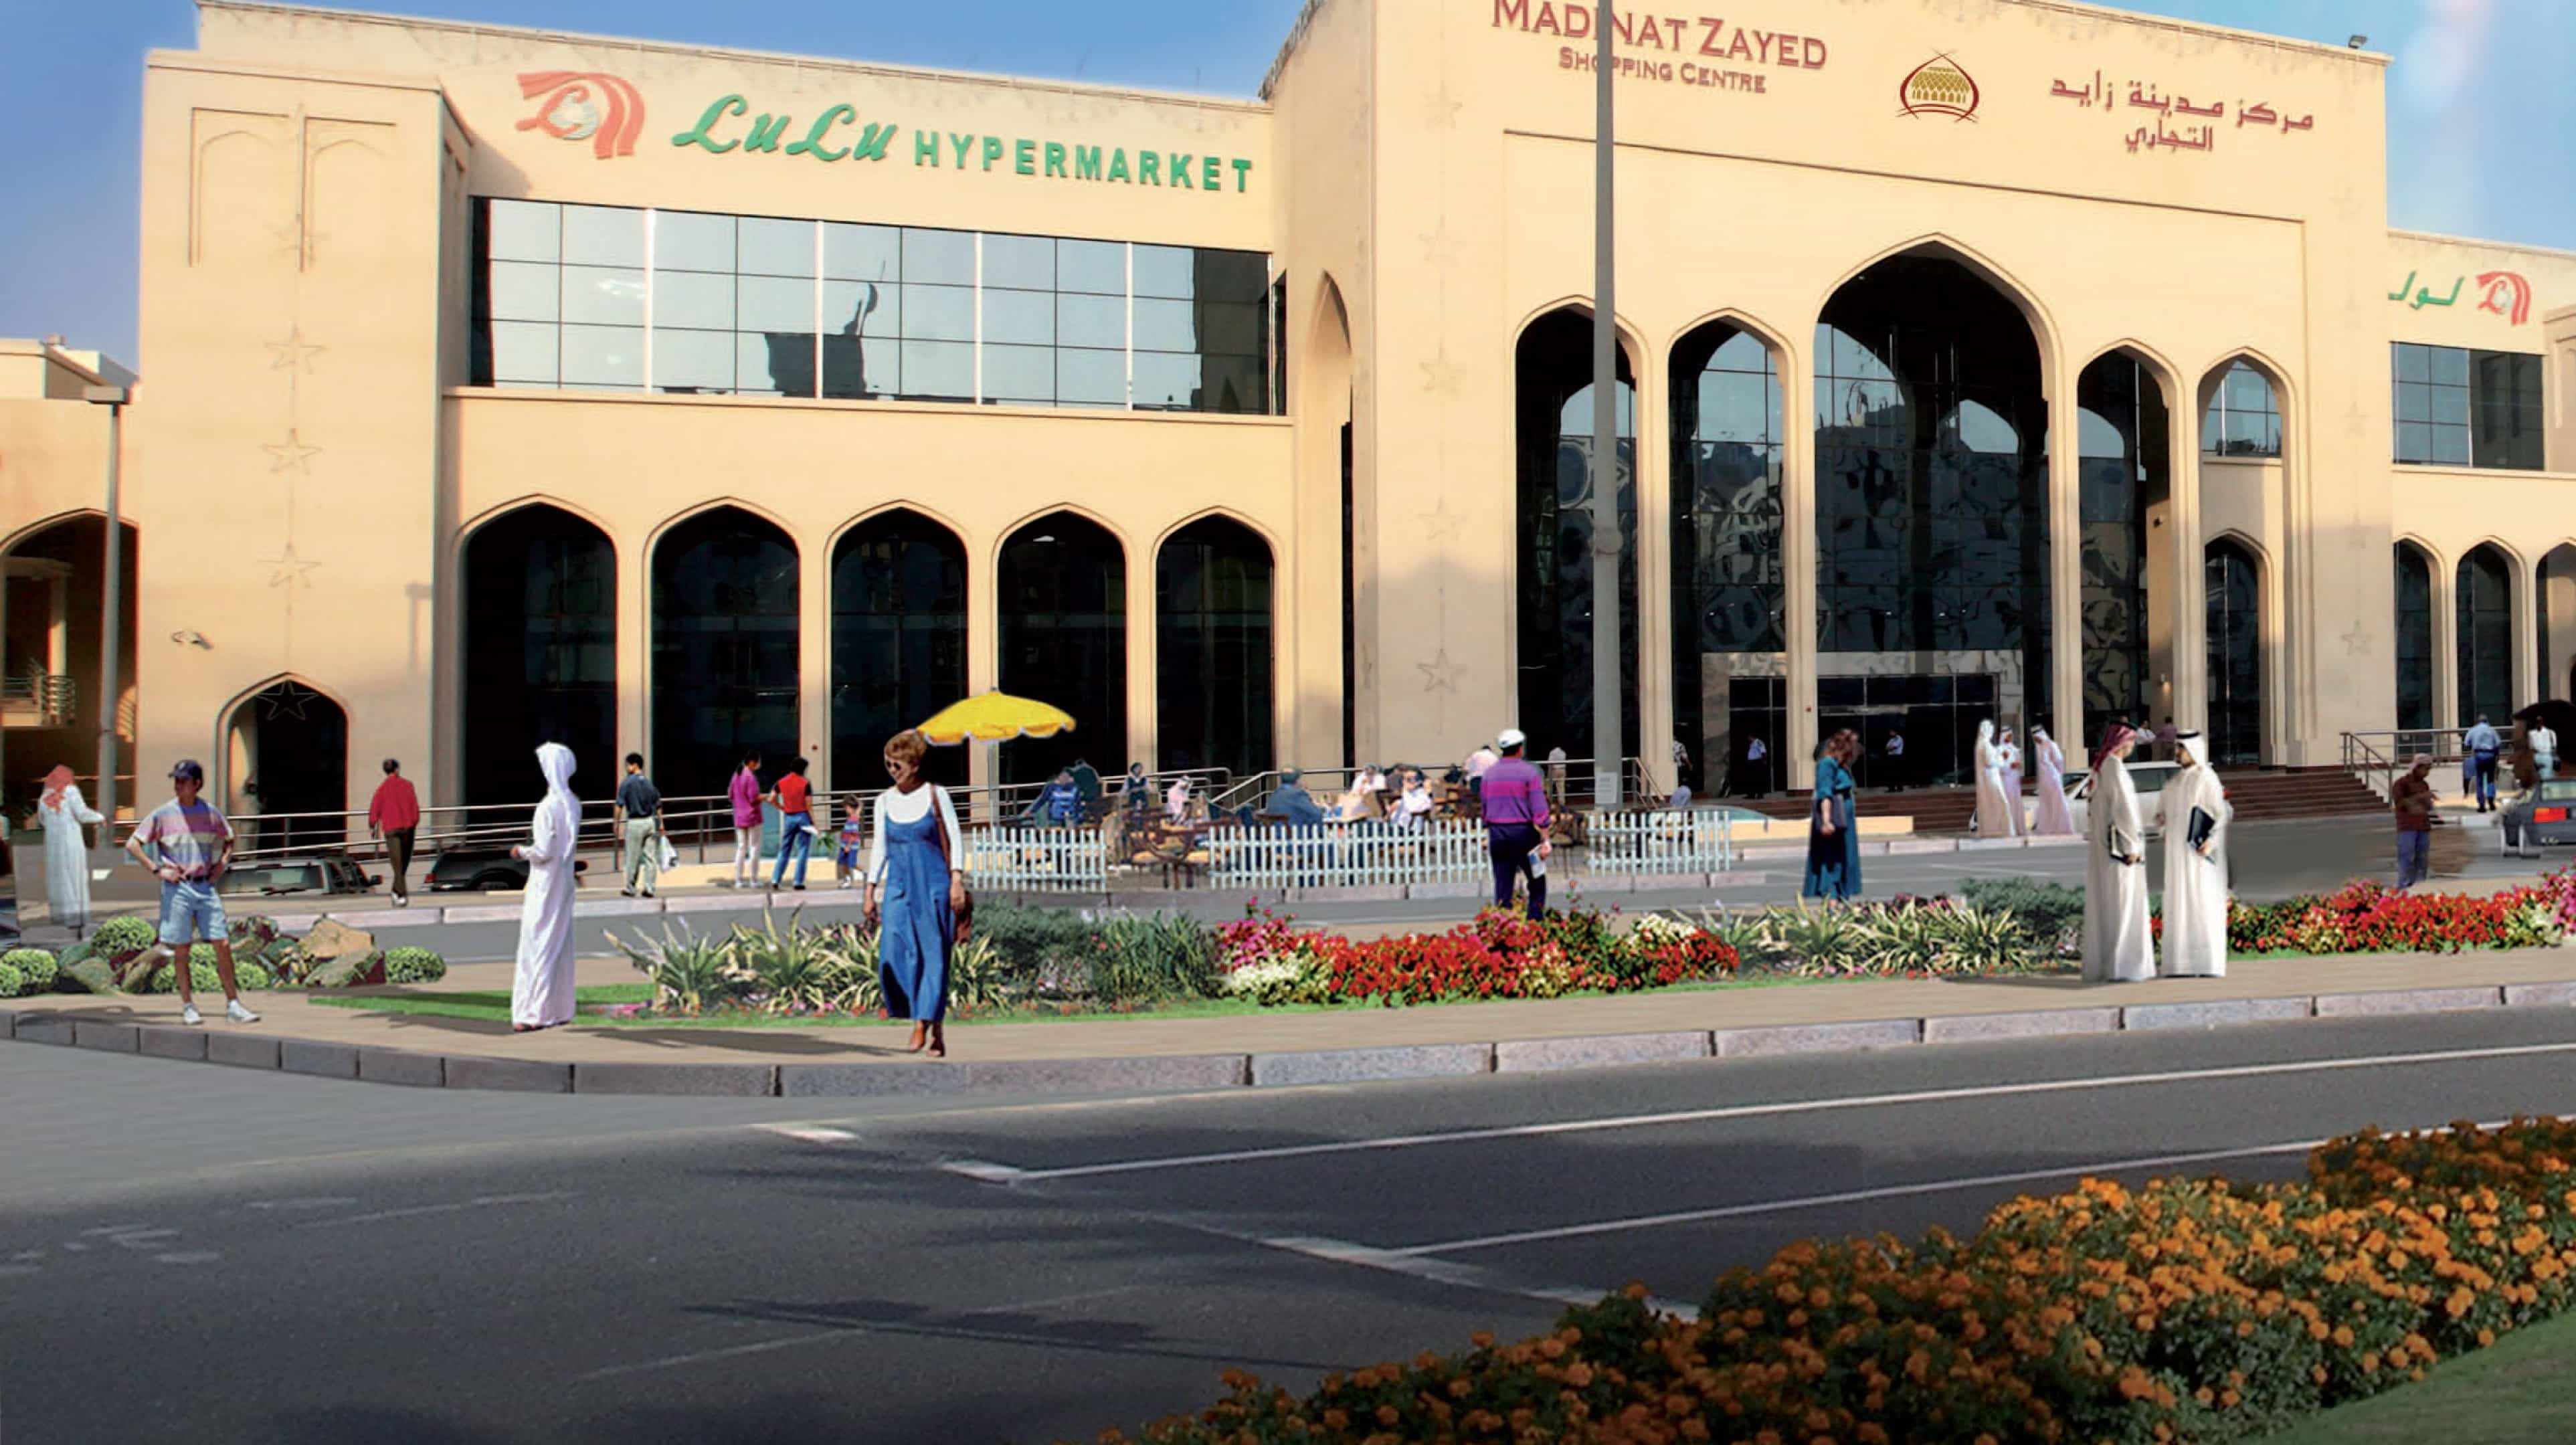 madinat zayed shopping centre and golf centre